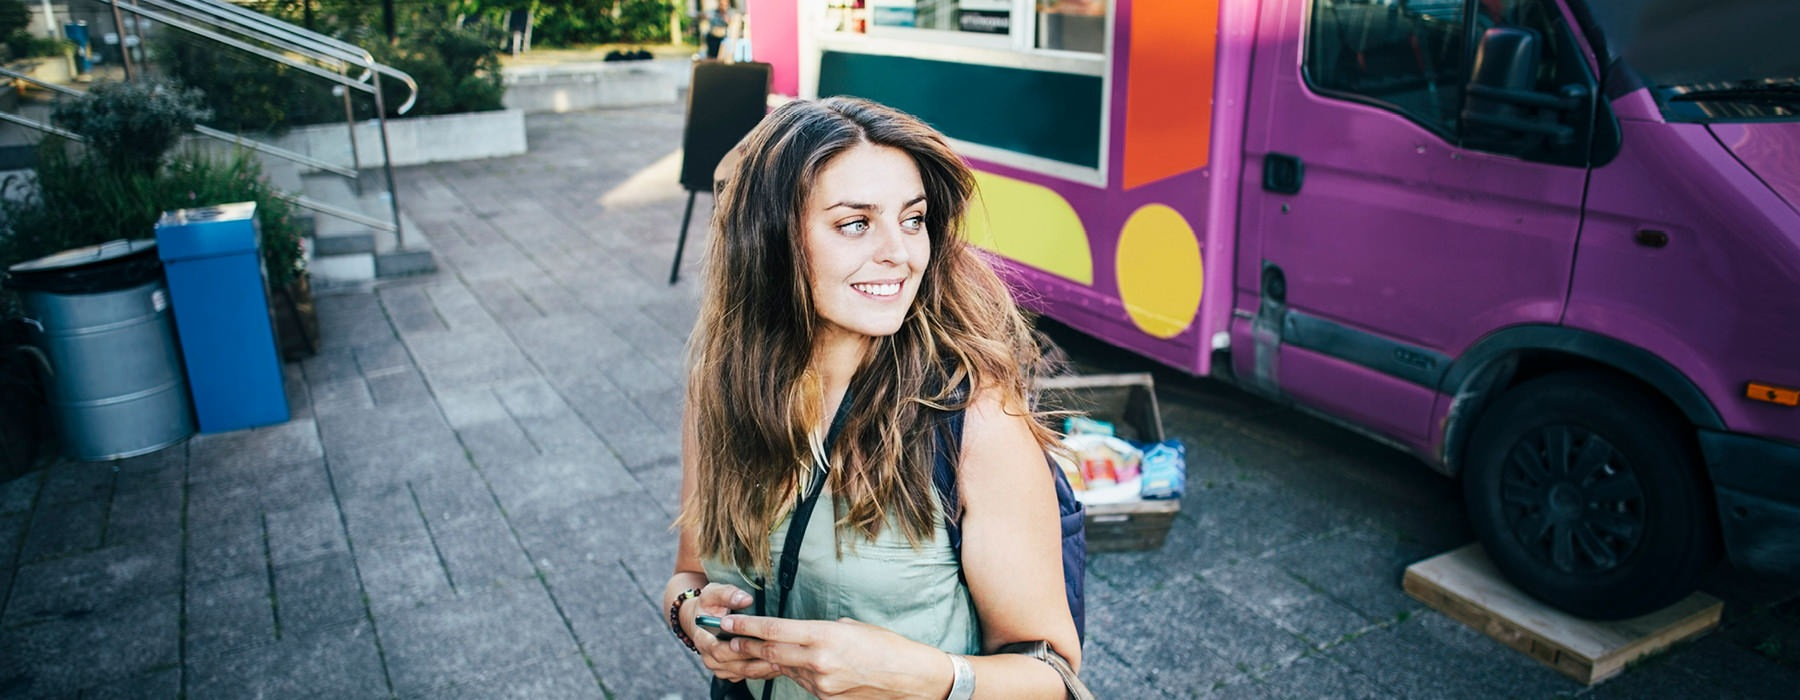 Woman on phone by foodtruck